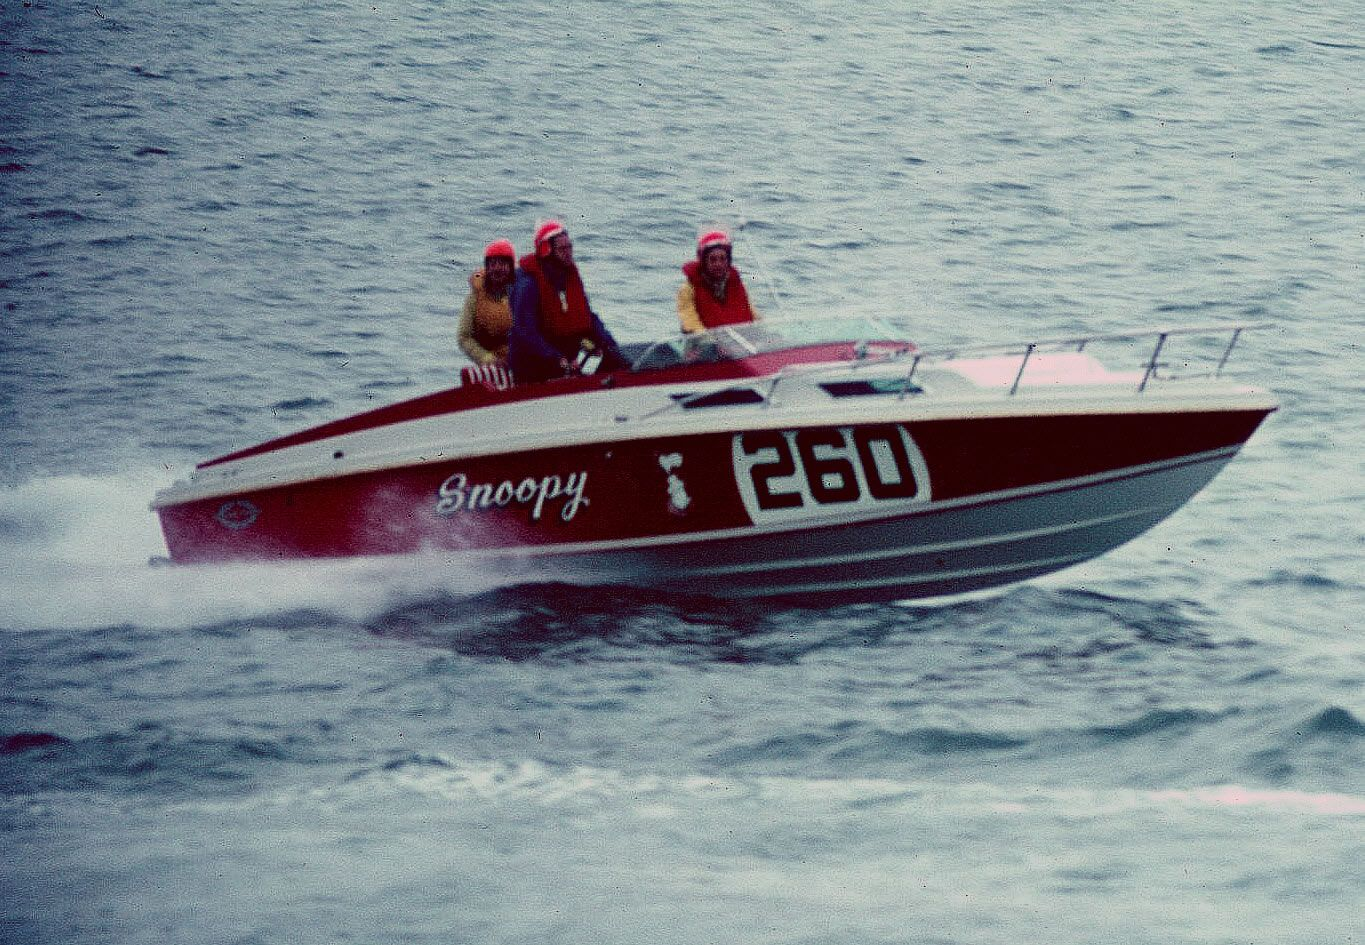 SNOOPY (1971). Power boats, Boat, Water crafts